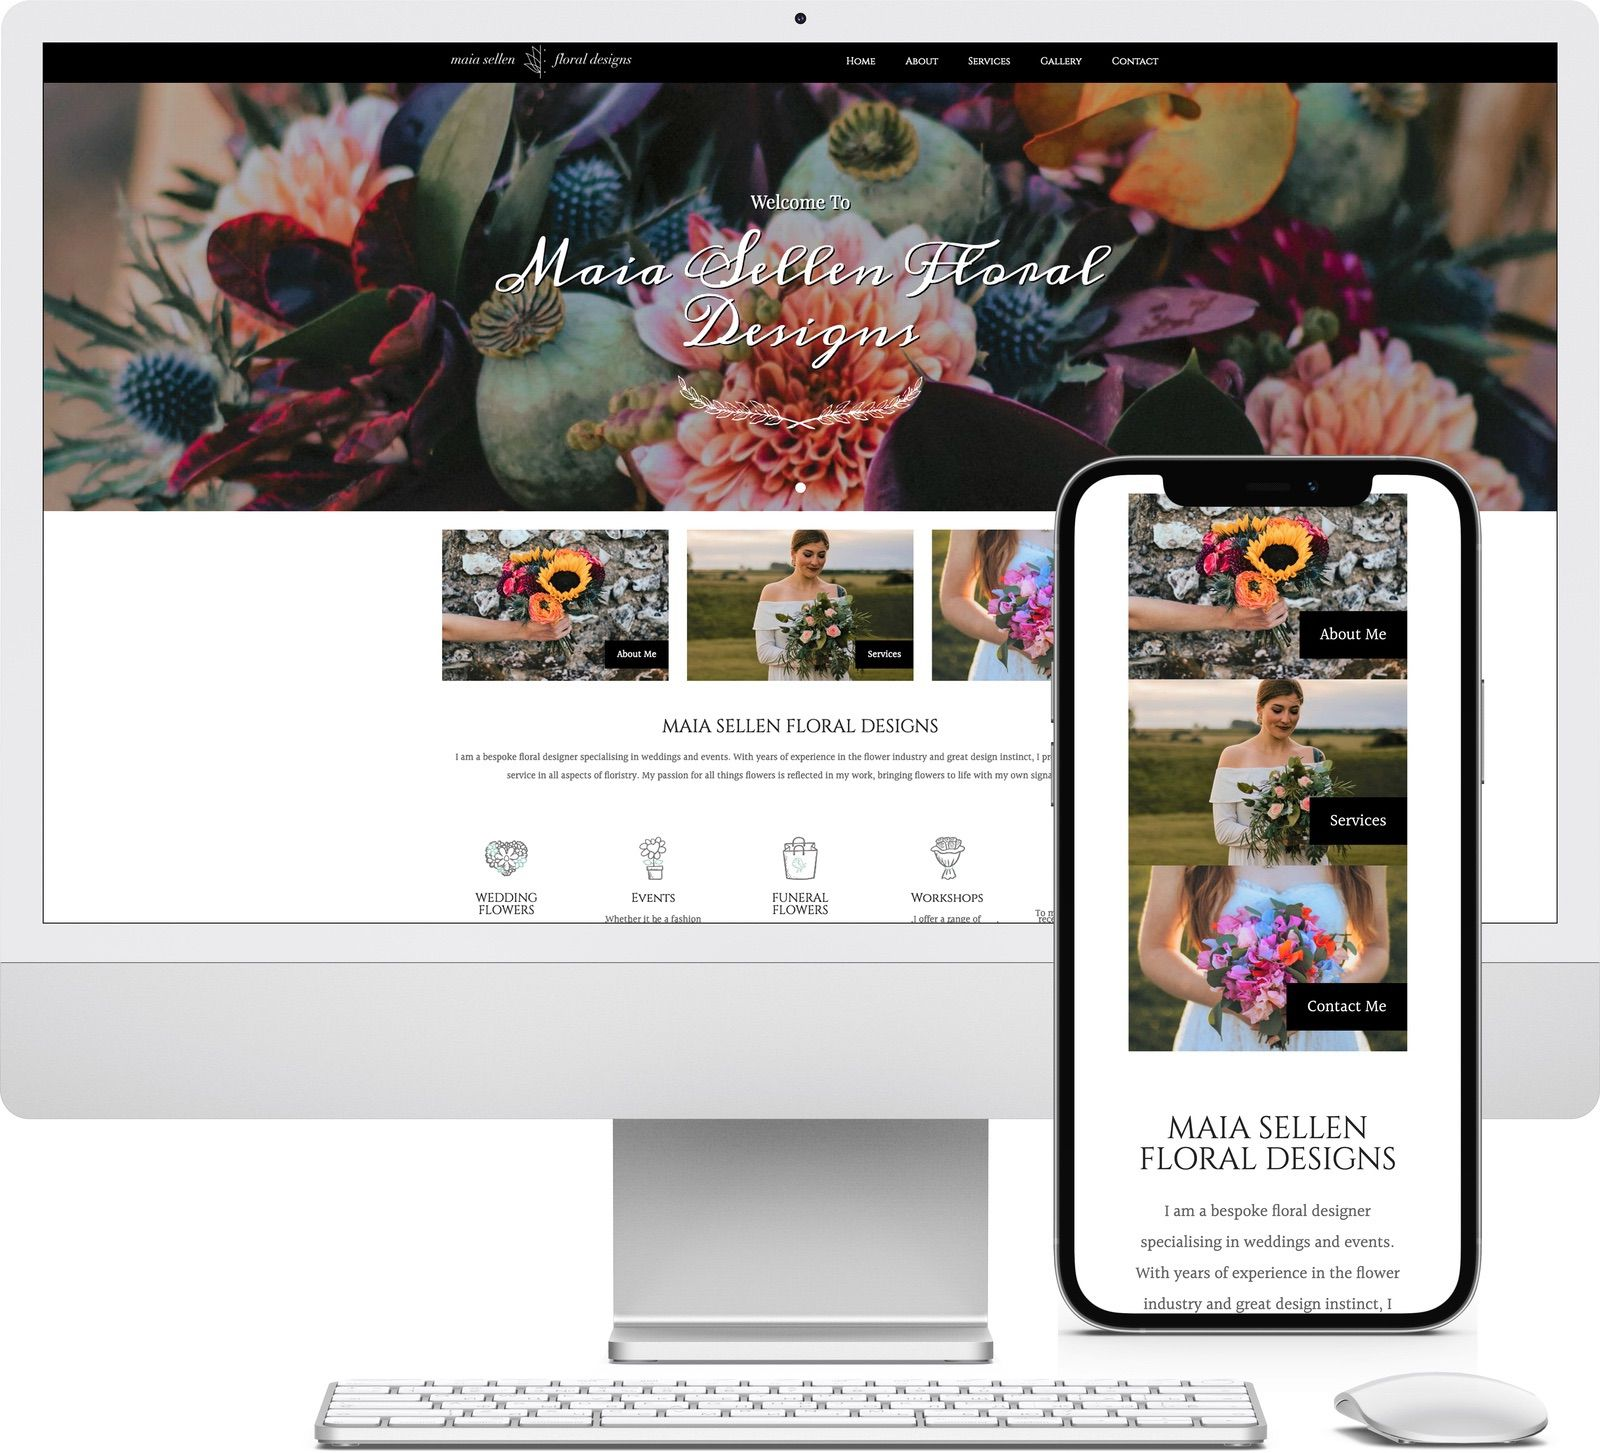 Maia Sellen Floral Designs iMac and iPhone mockup image - Riotspace Creative